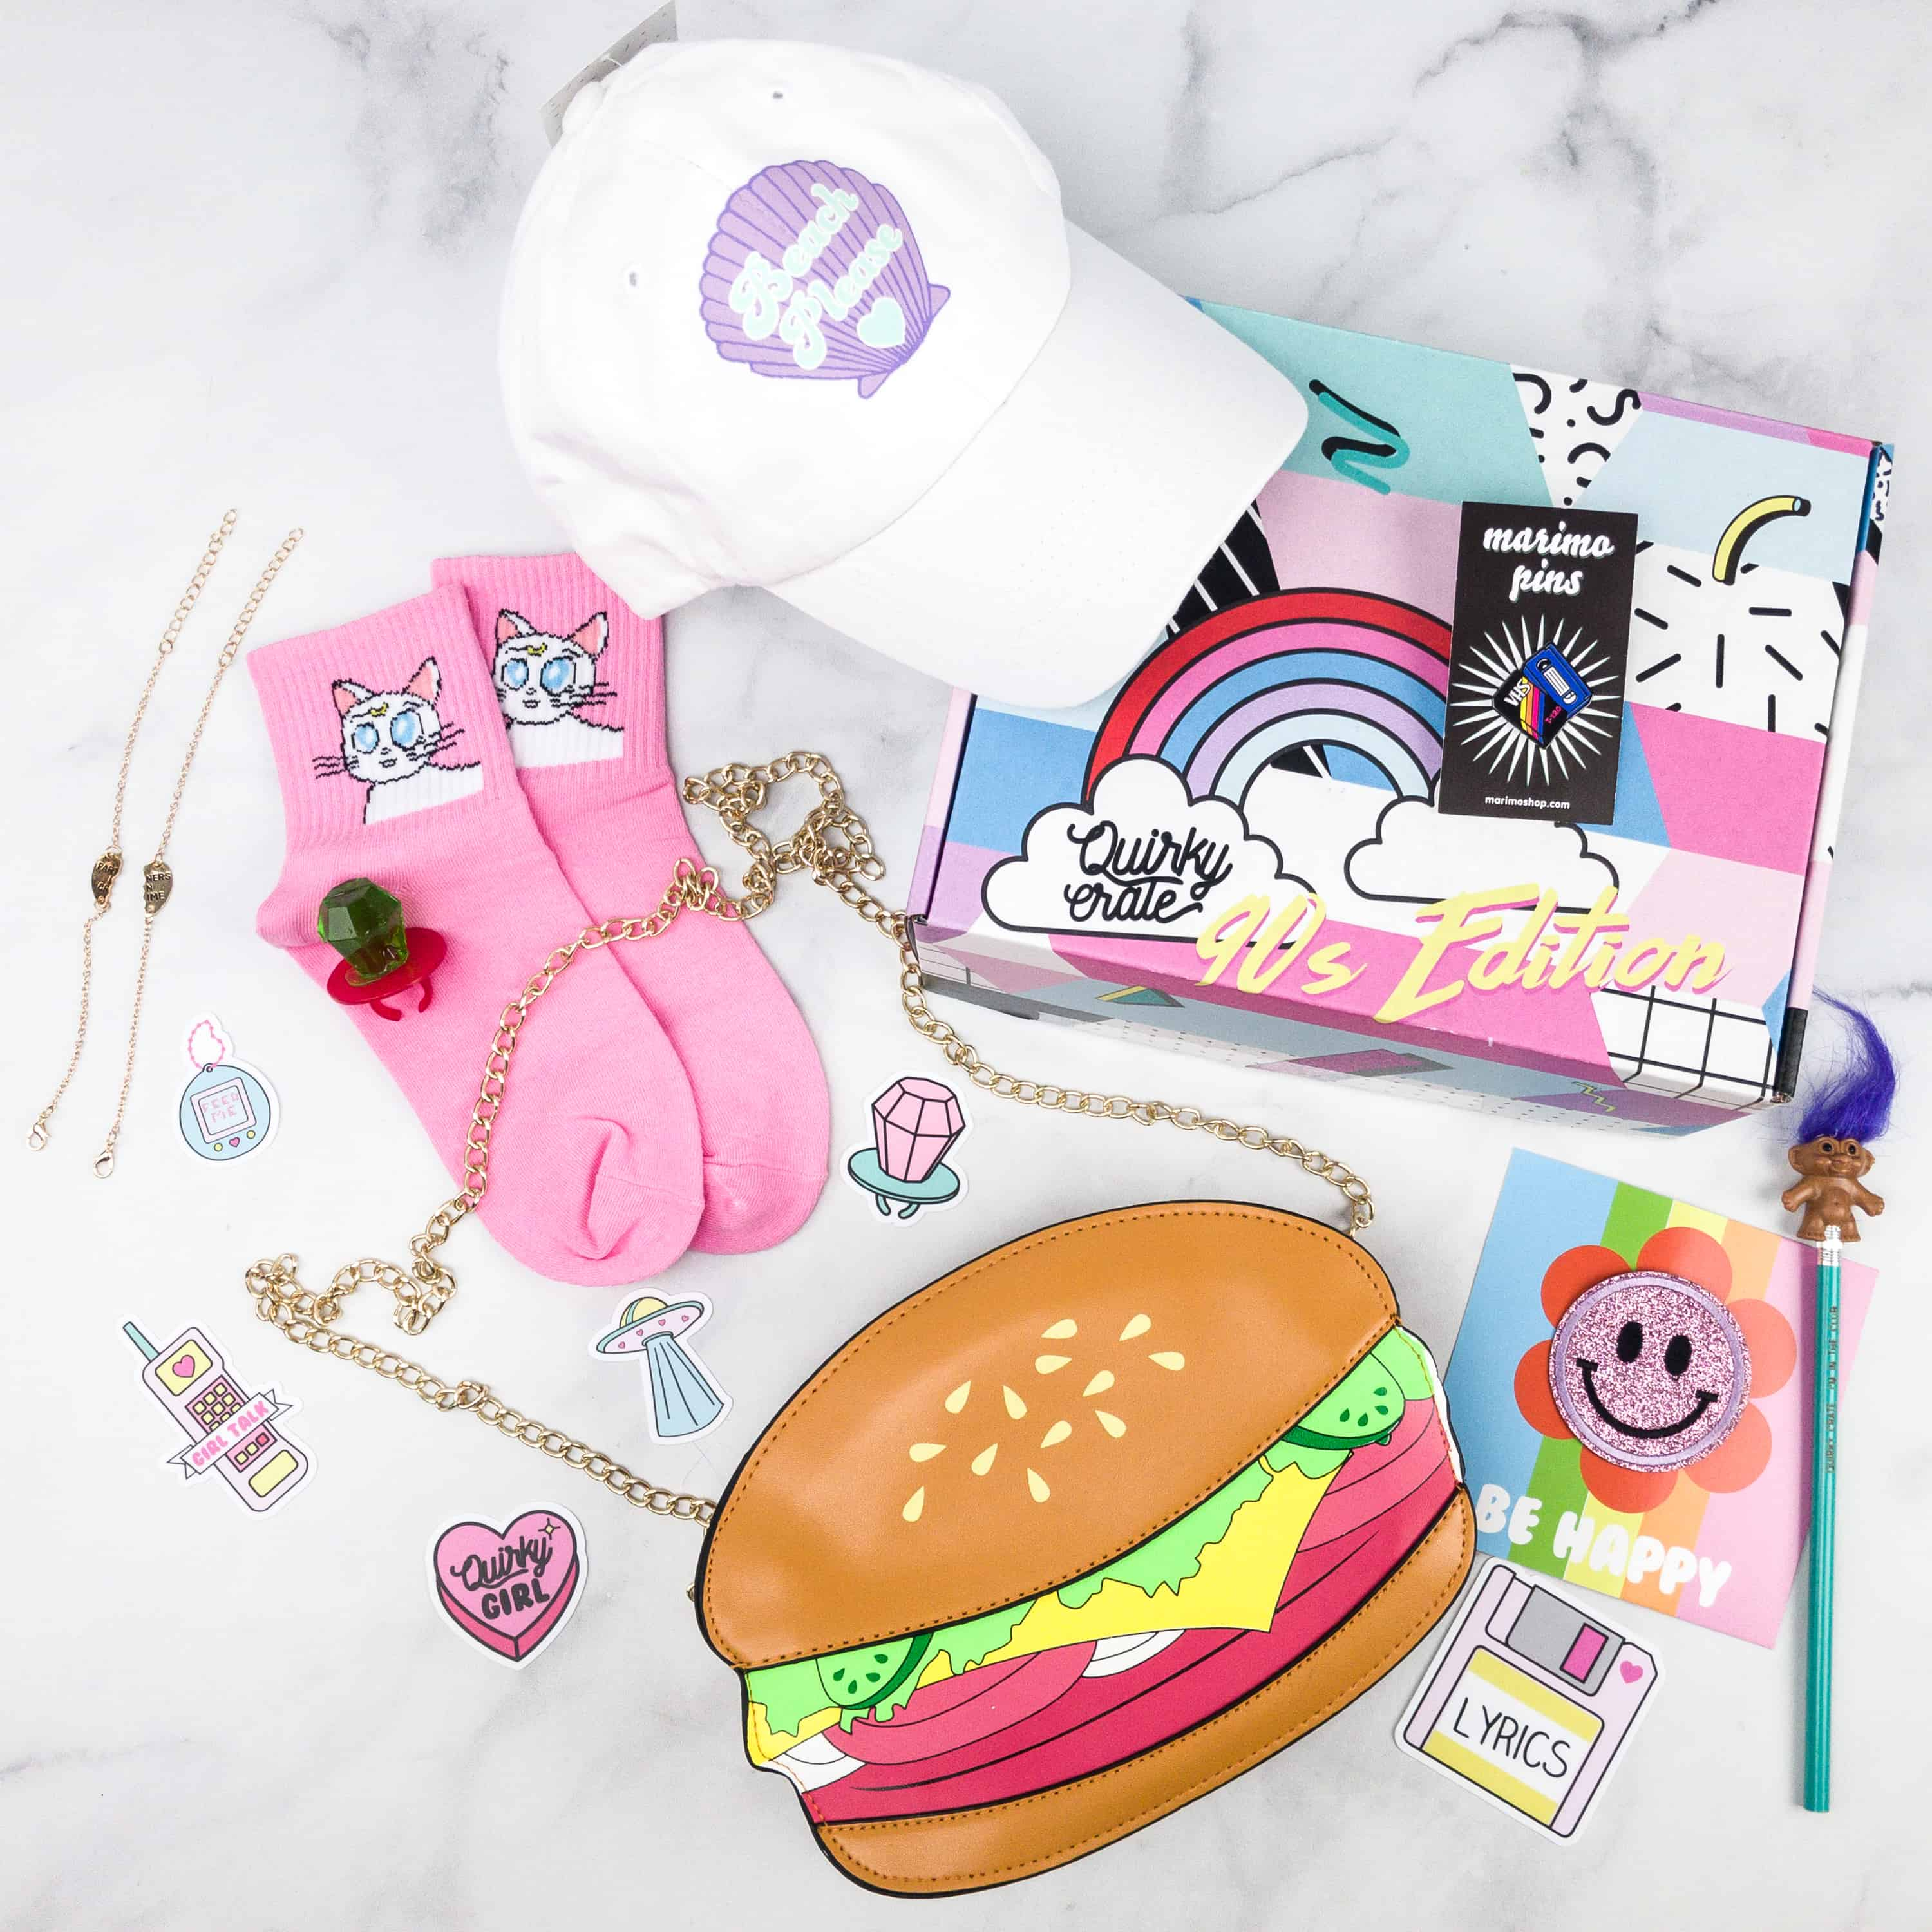 Quirky Crate March 2018 Subscription Box Review + Coupon